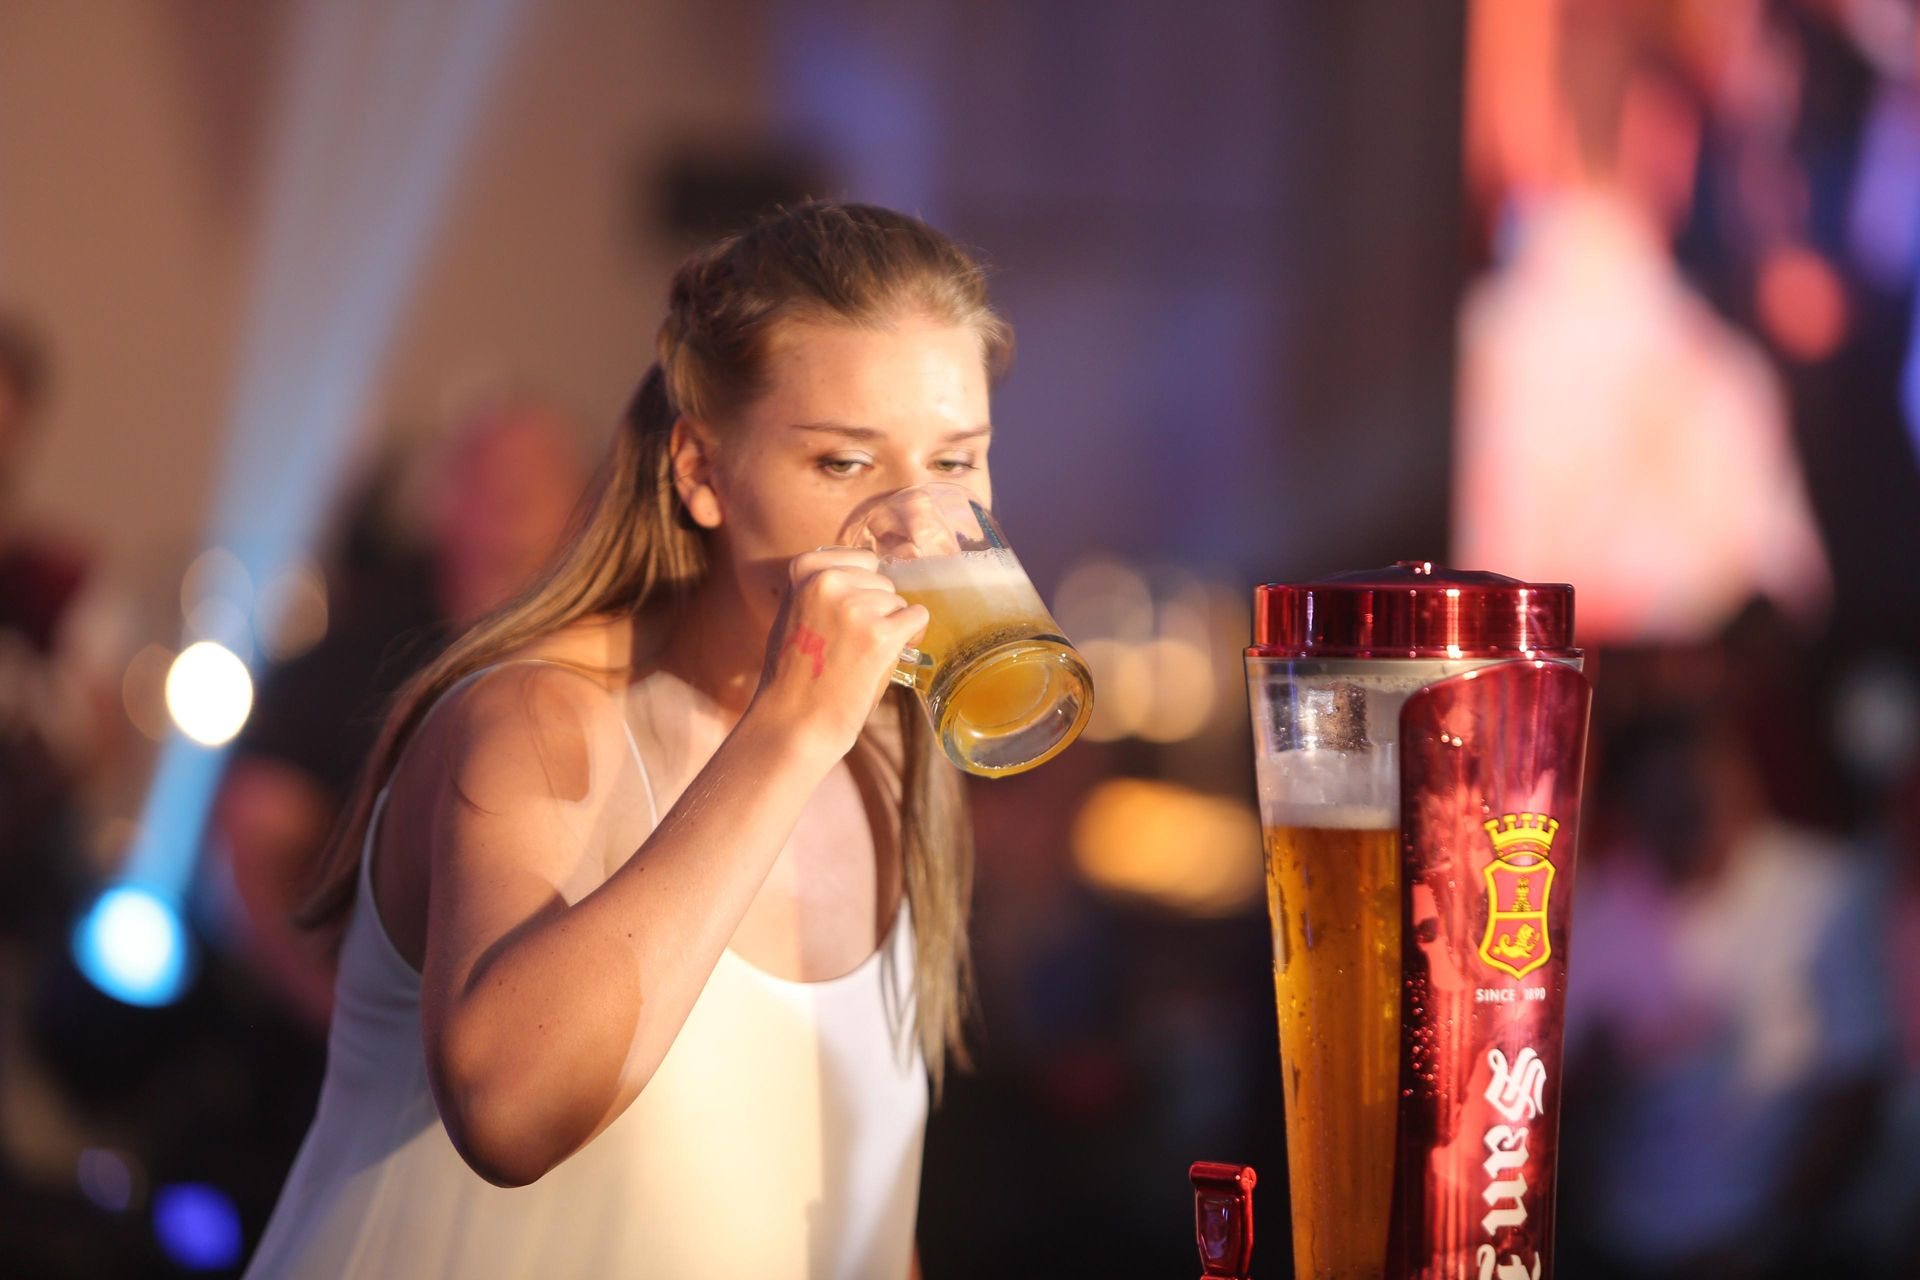 Taru Malagoli joins the beer relay for women during the Crayfish Party